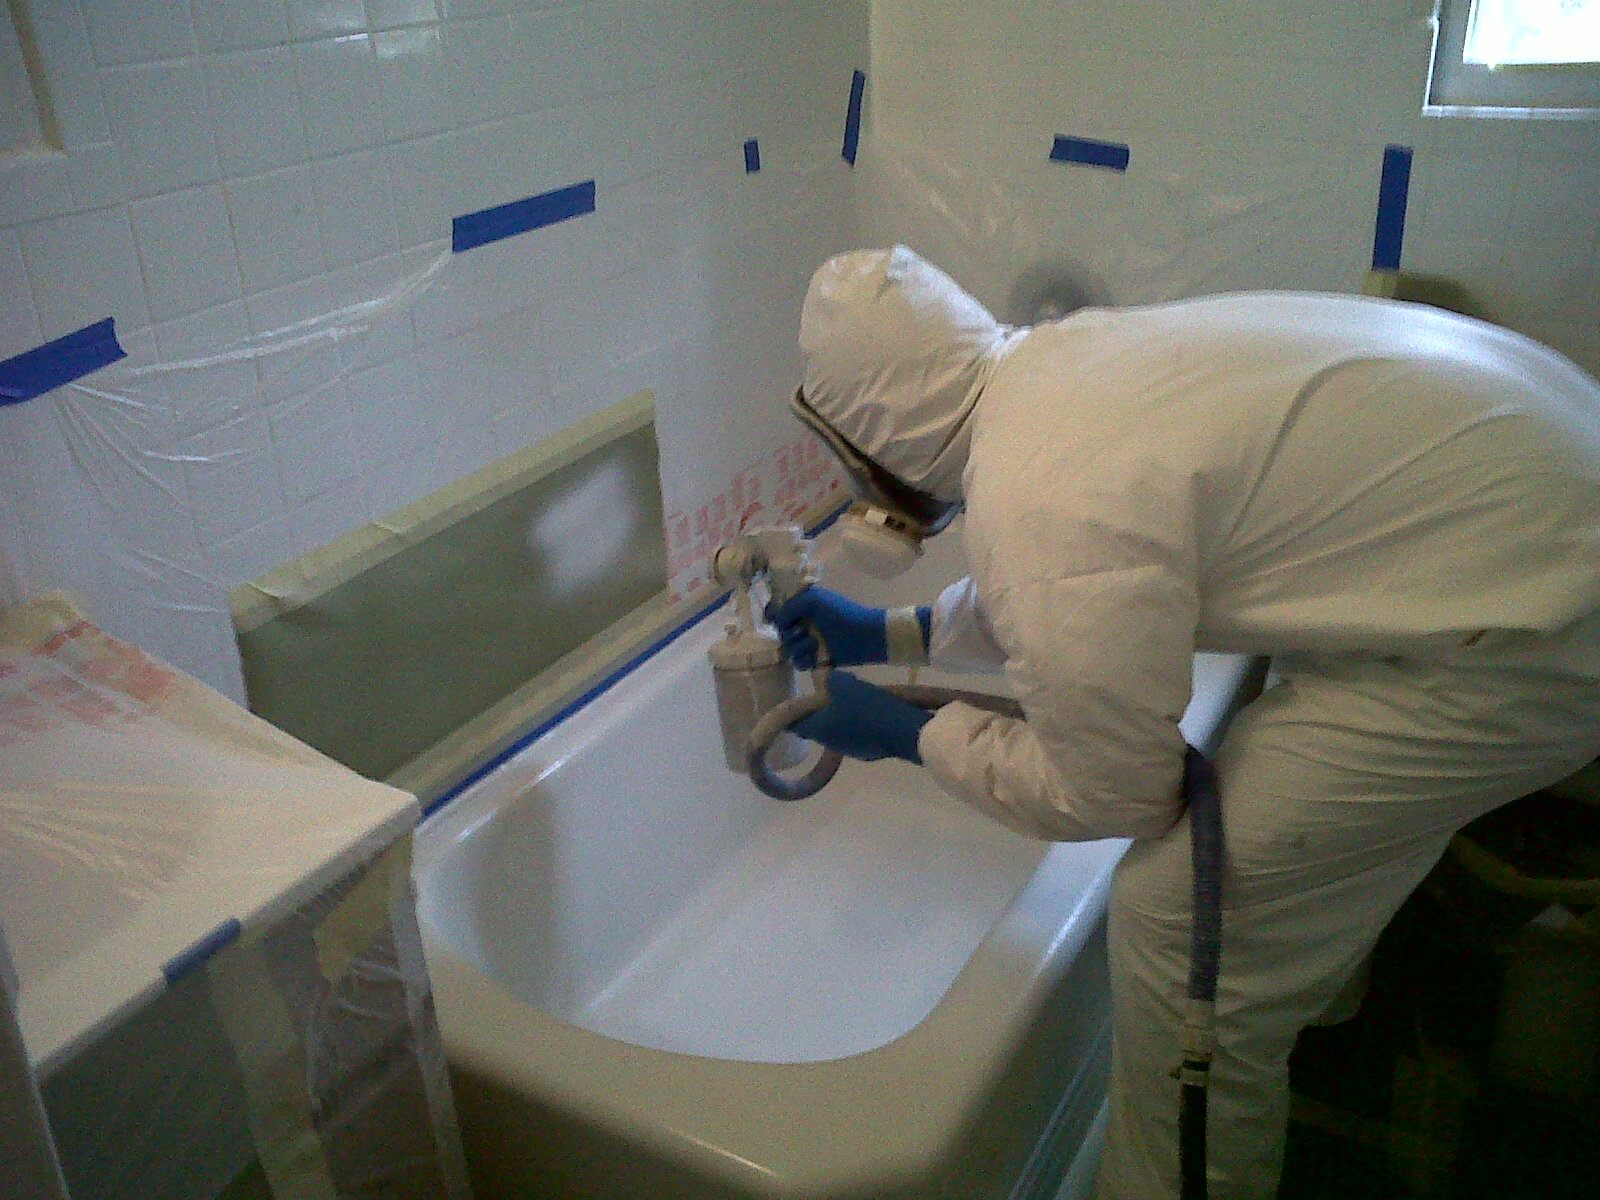 Bathtub Refinishing: What Is It - Call us at 916-472-0507!